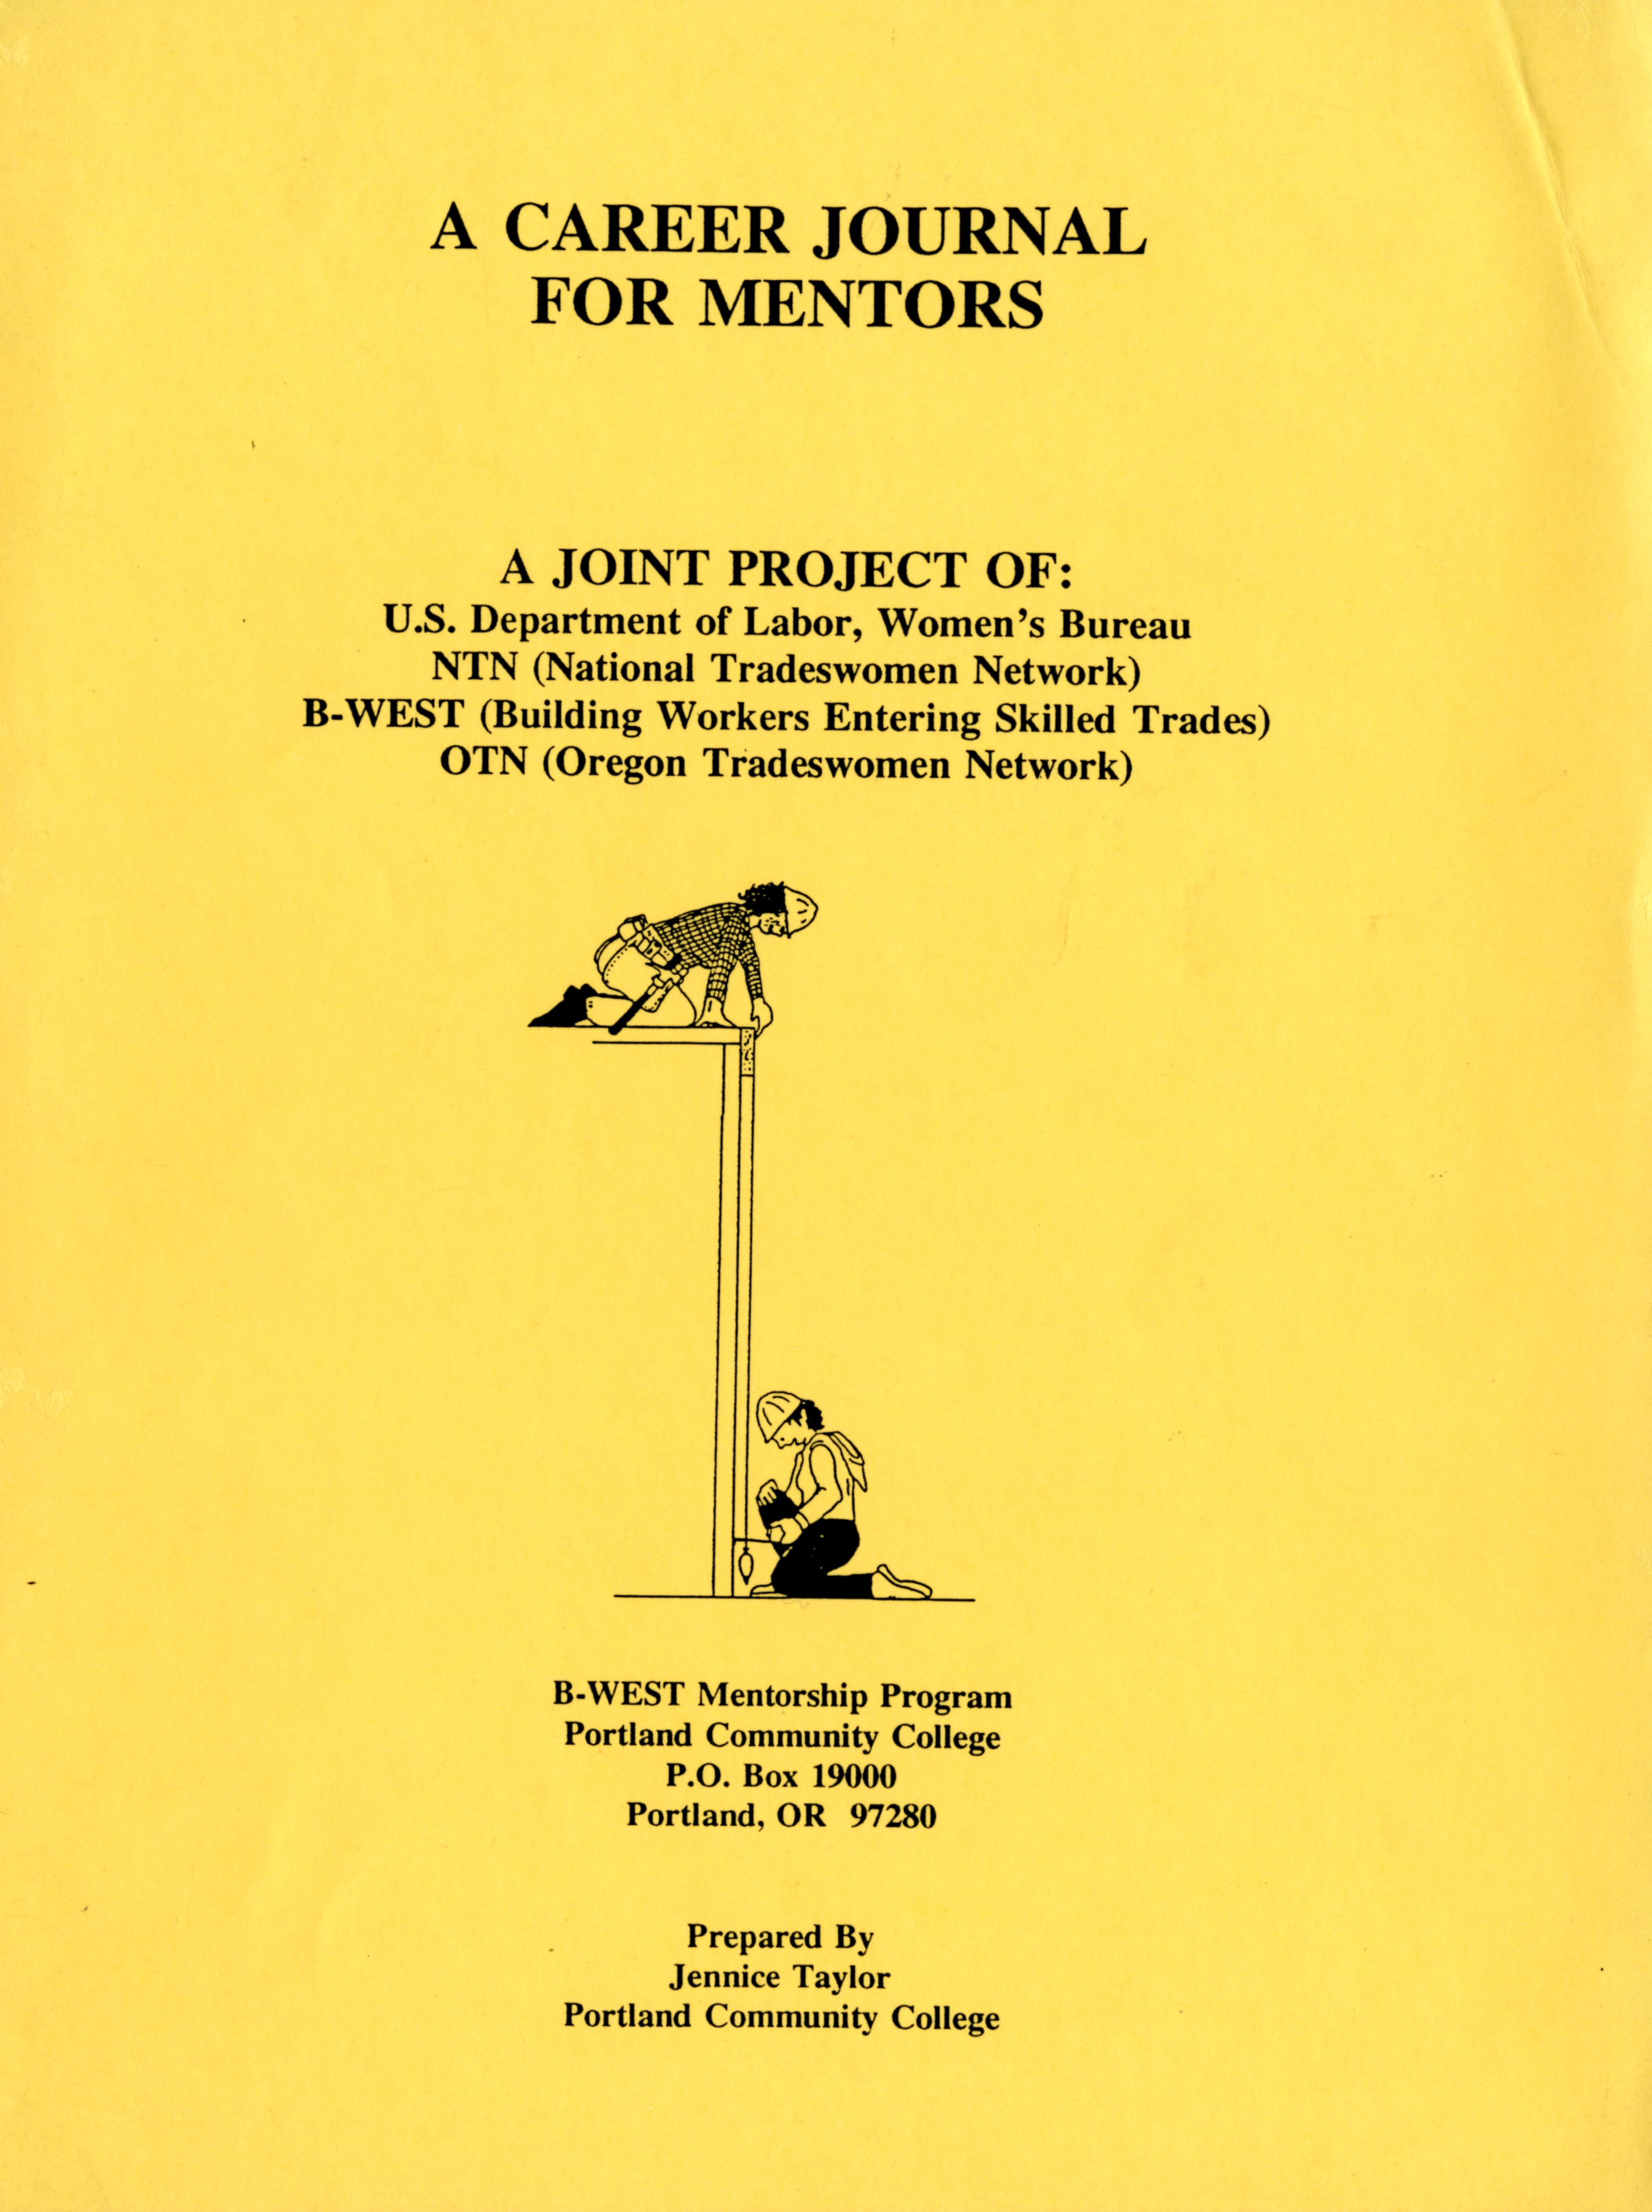 Report entitled A Career Journal for Mentors